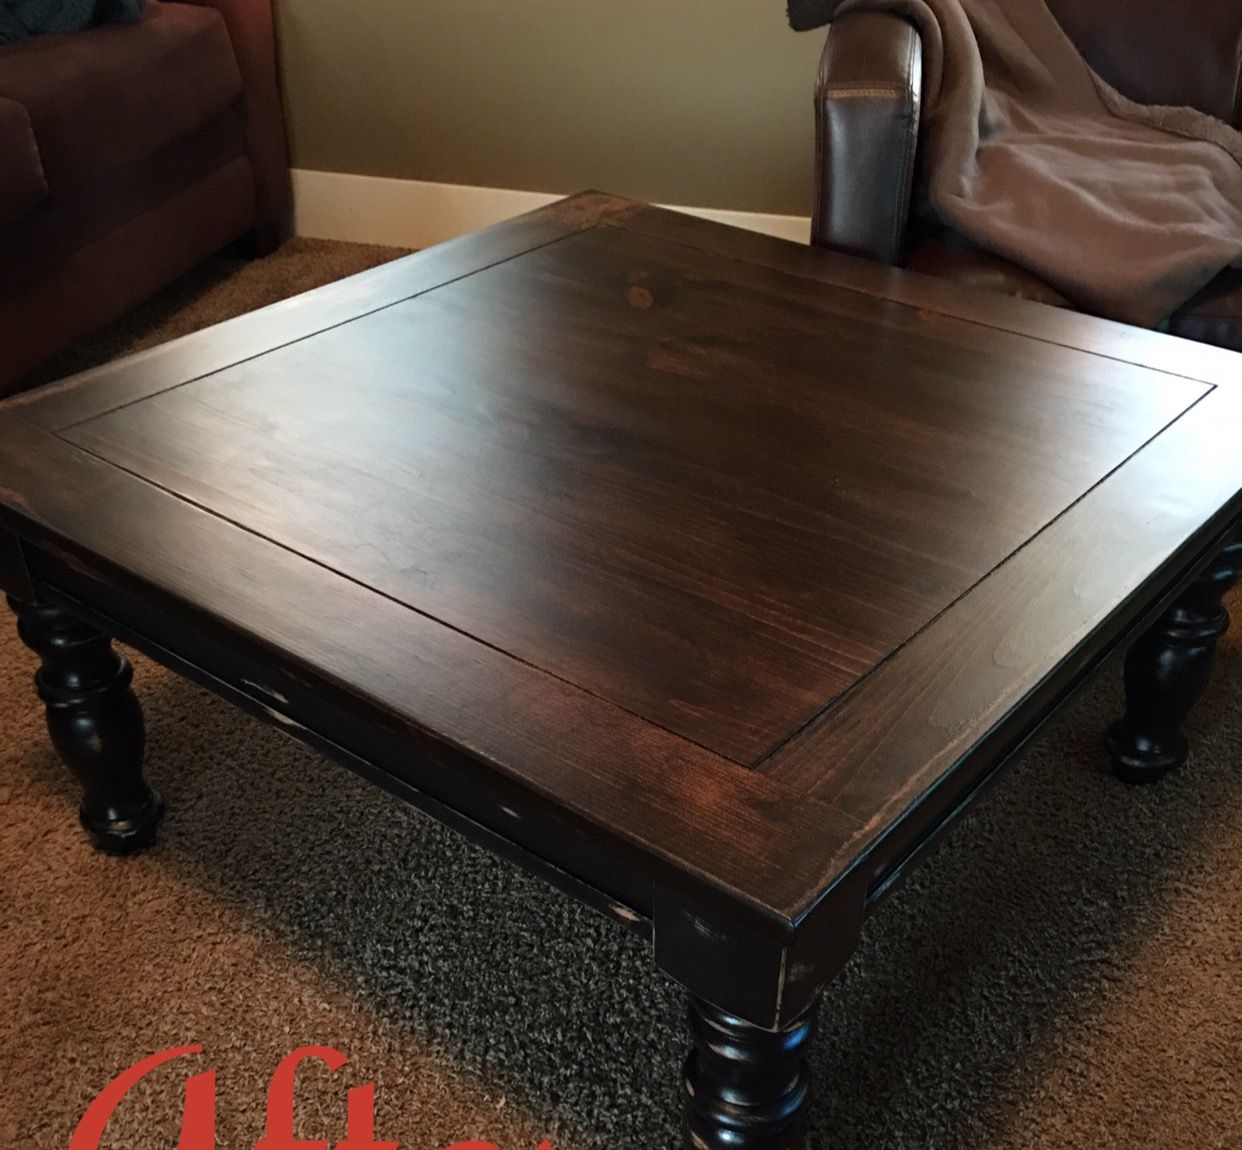 Solid Square Coffee Table Refinished In Expresso Stain And Black Chalk Paint Bottom And Distressed Coffee Table Refinish Coffee Table Redo Coffee Table Square